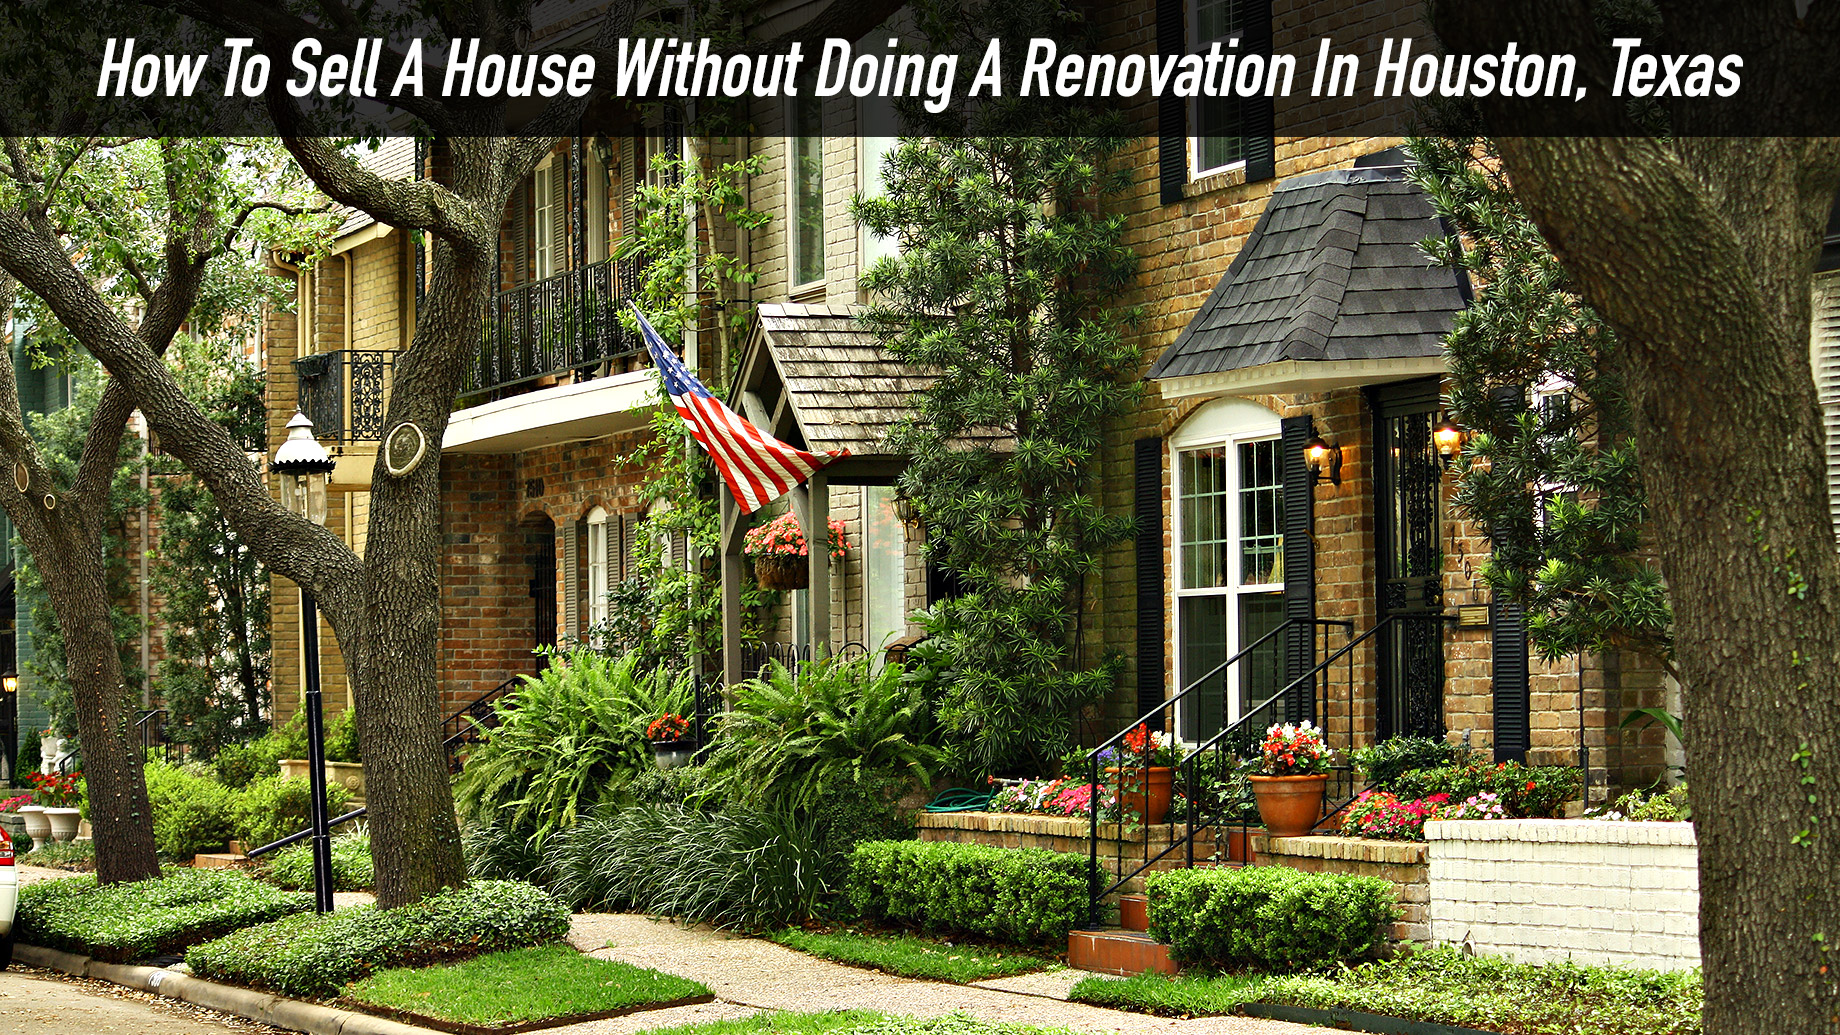 How To Sell A House Without Doing A Renovation In Houston, Texas